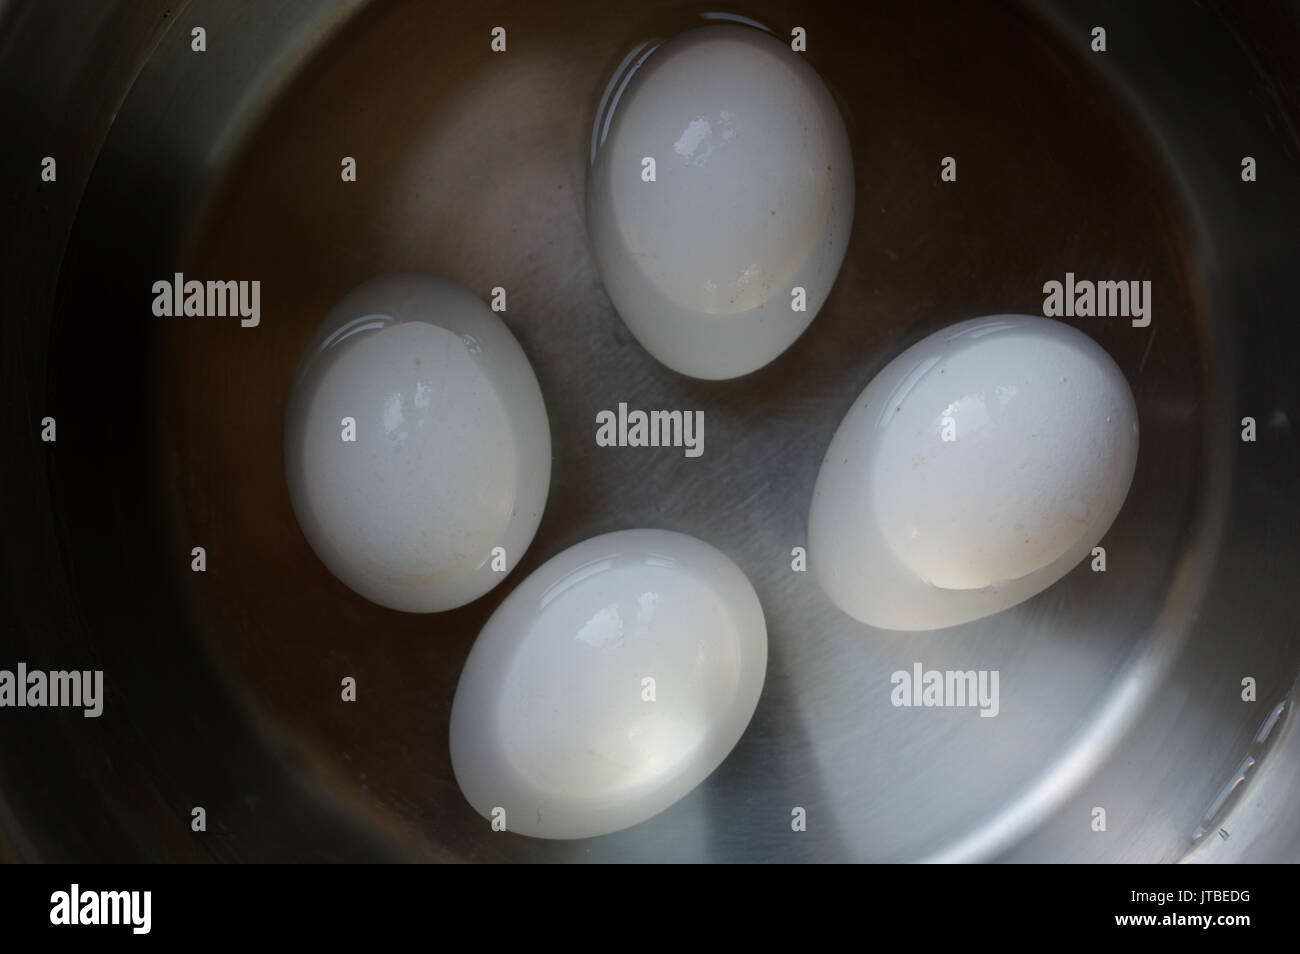 Eggs are waiting for boiling Stock Photo